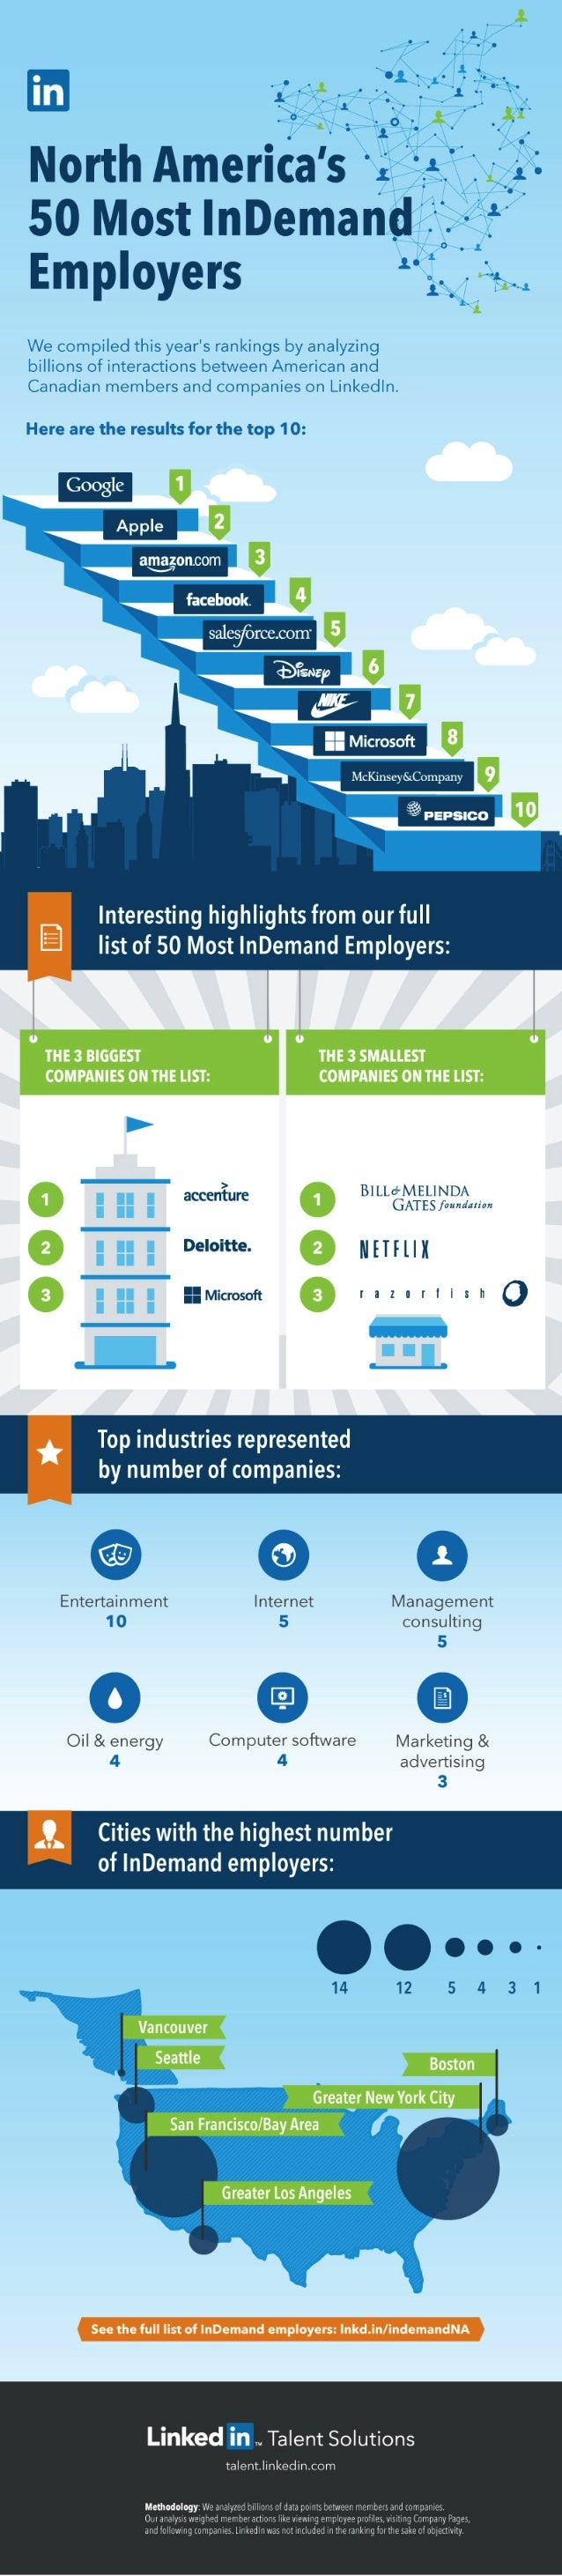 The Most InDemand Employers in North America 2014 | Infographic